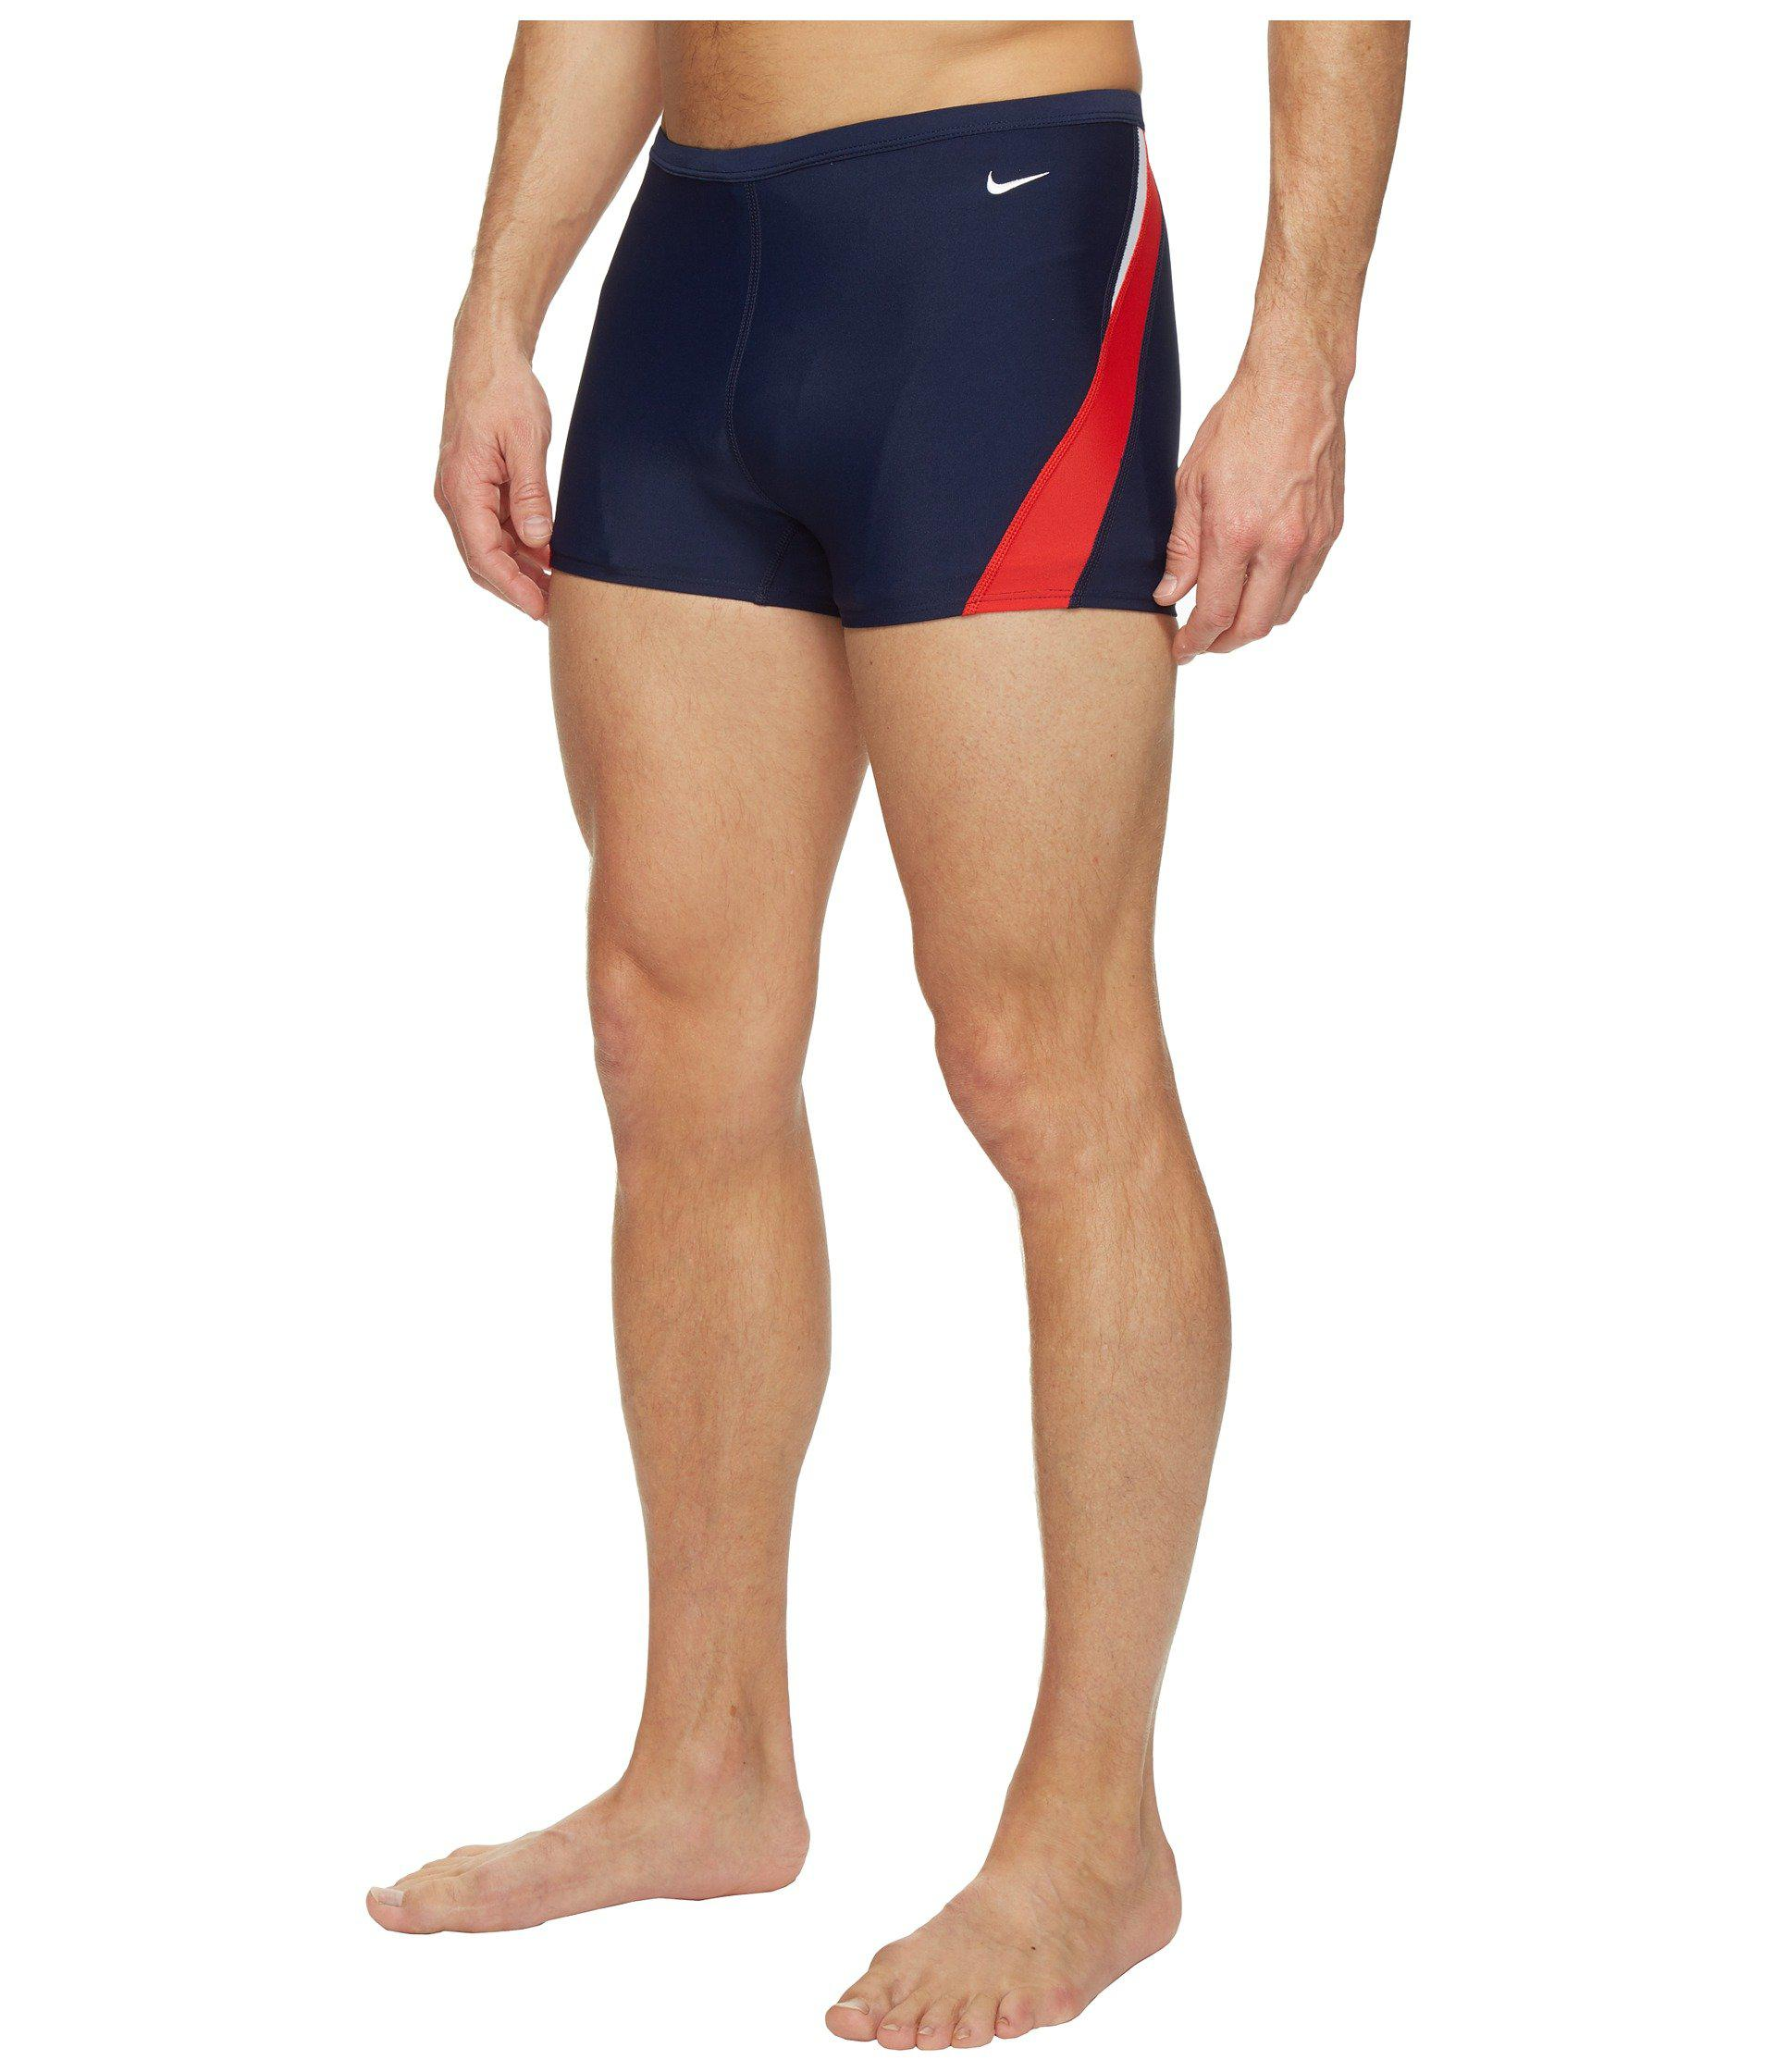 01a355332b Lyst - Nike Surge Color Block Poly Square Leg Brief (red/navy) Men's  Swimwear in Blue for Men